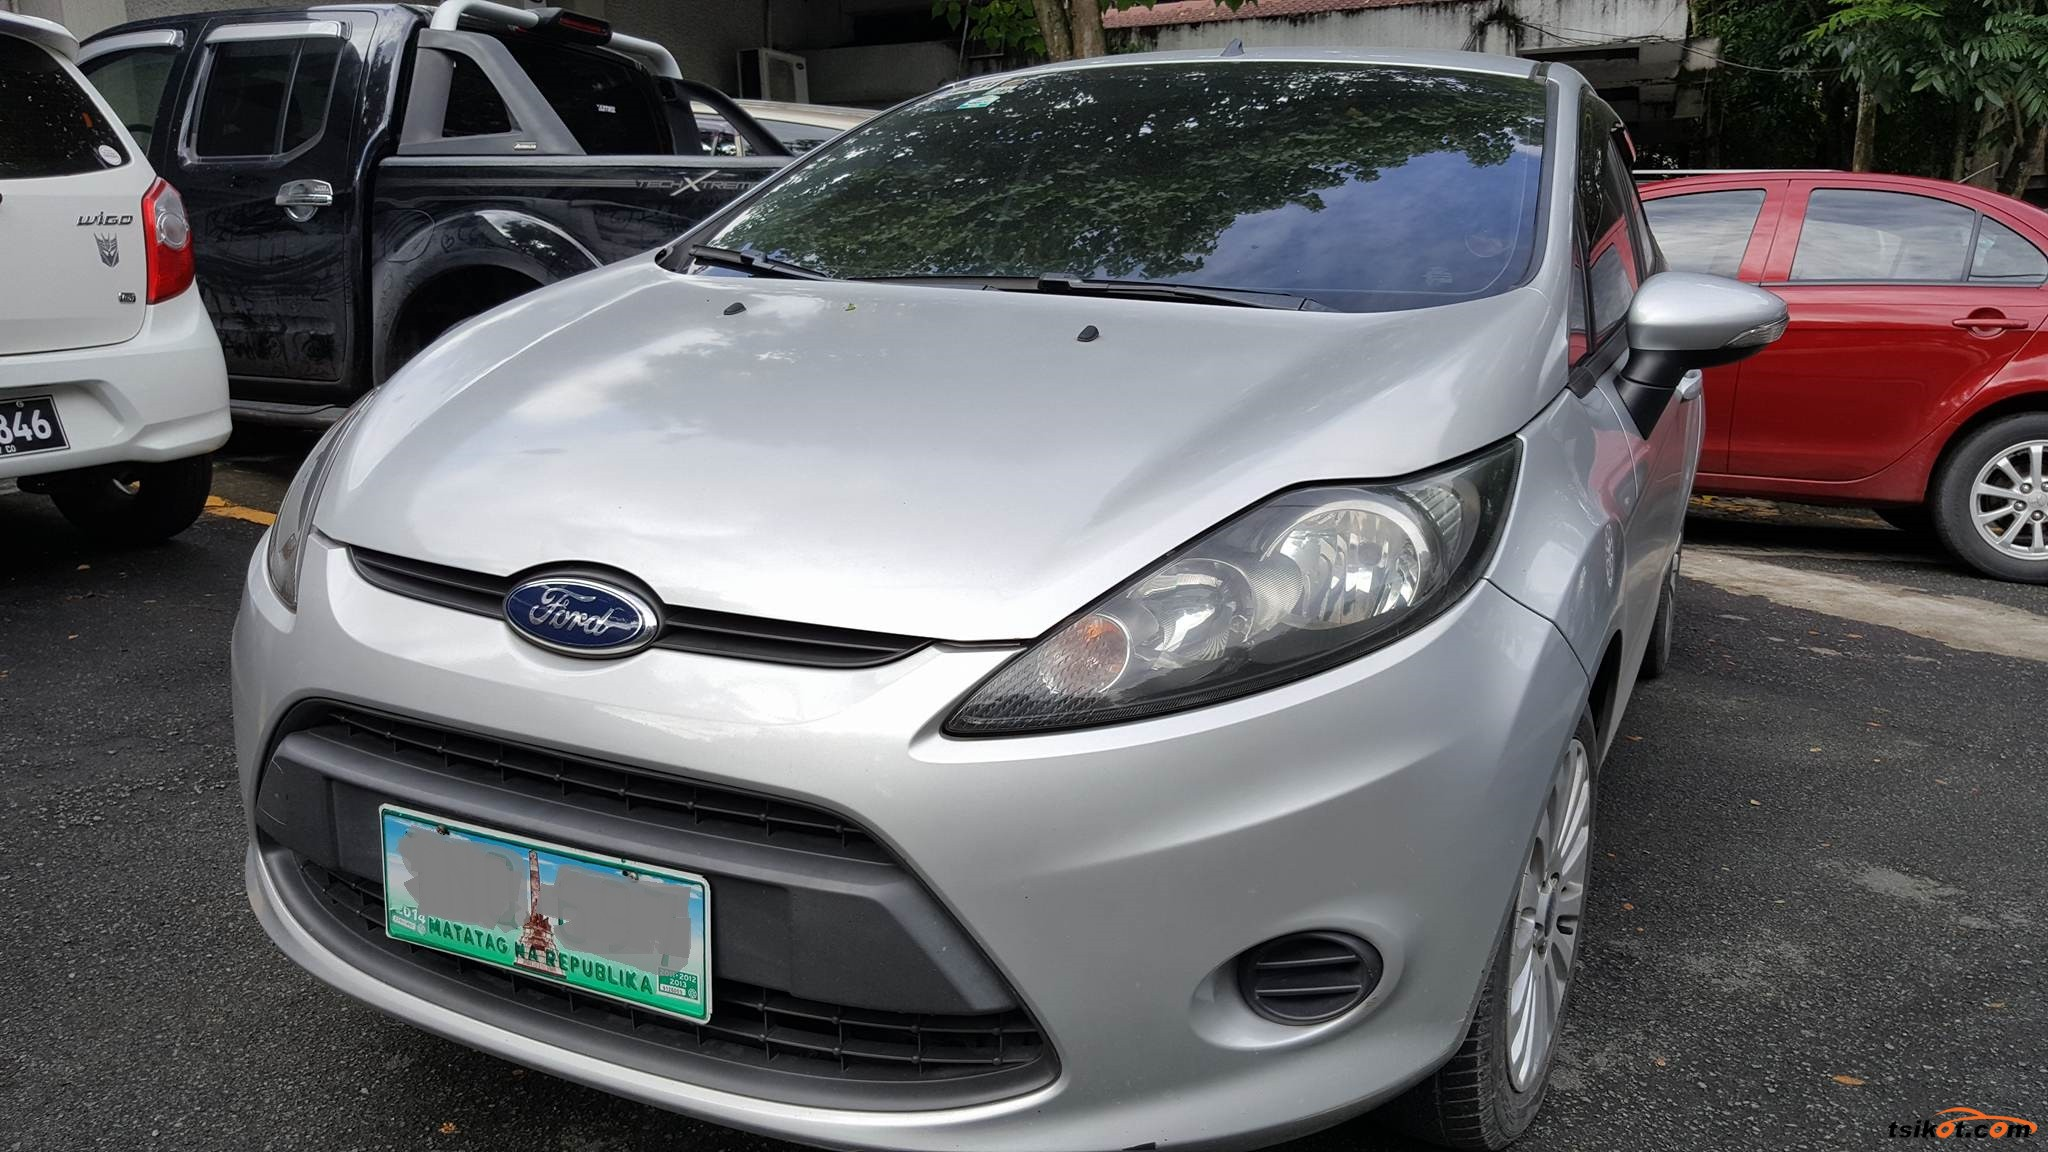 ford fiesta 2011 car for sale metro manila. Black Bedroom Furniture Sets. Home Design Ideas